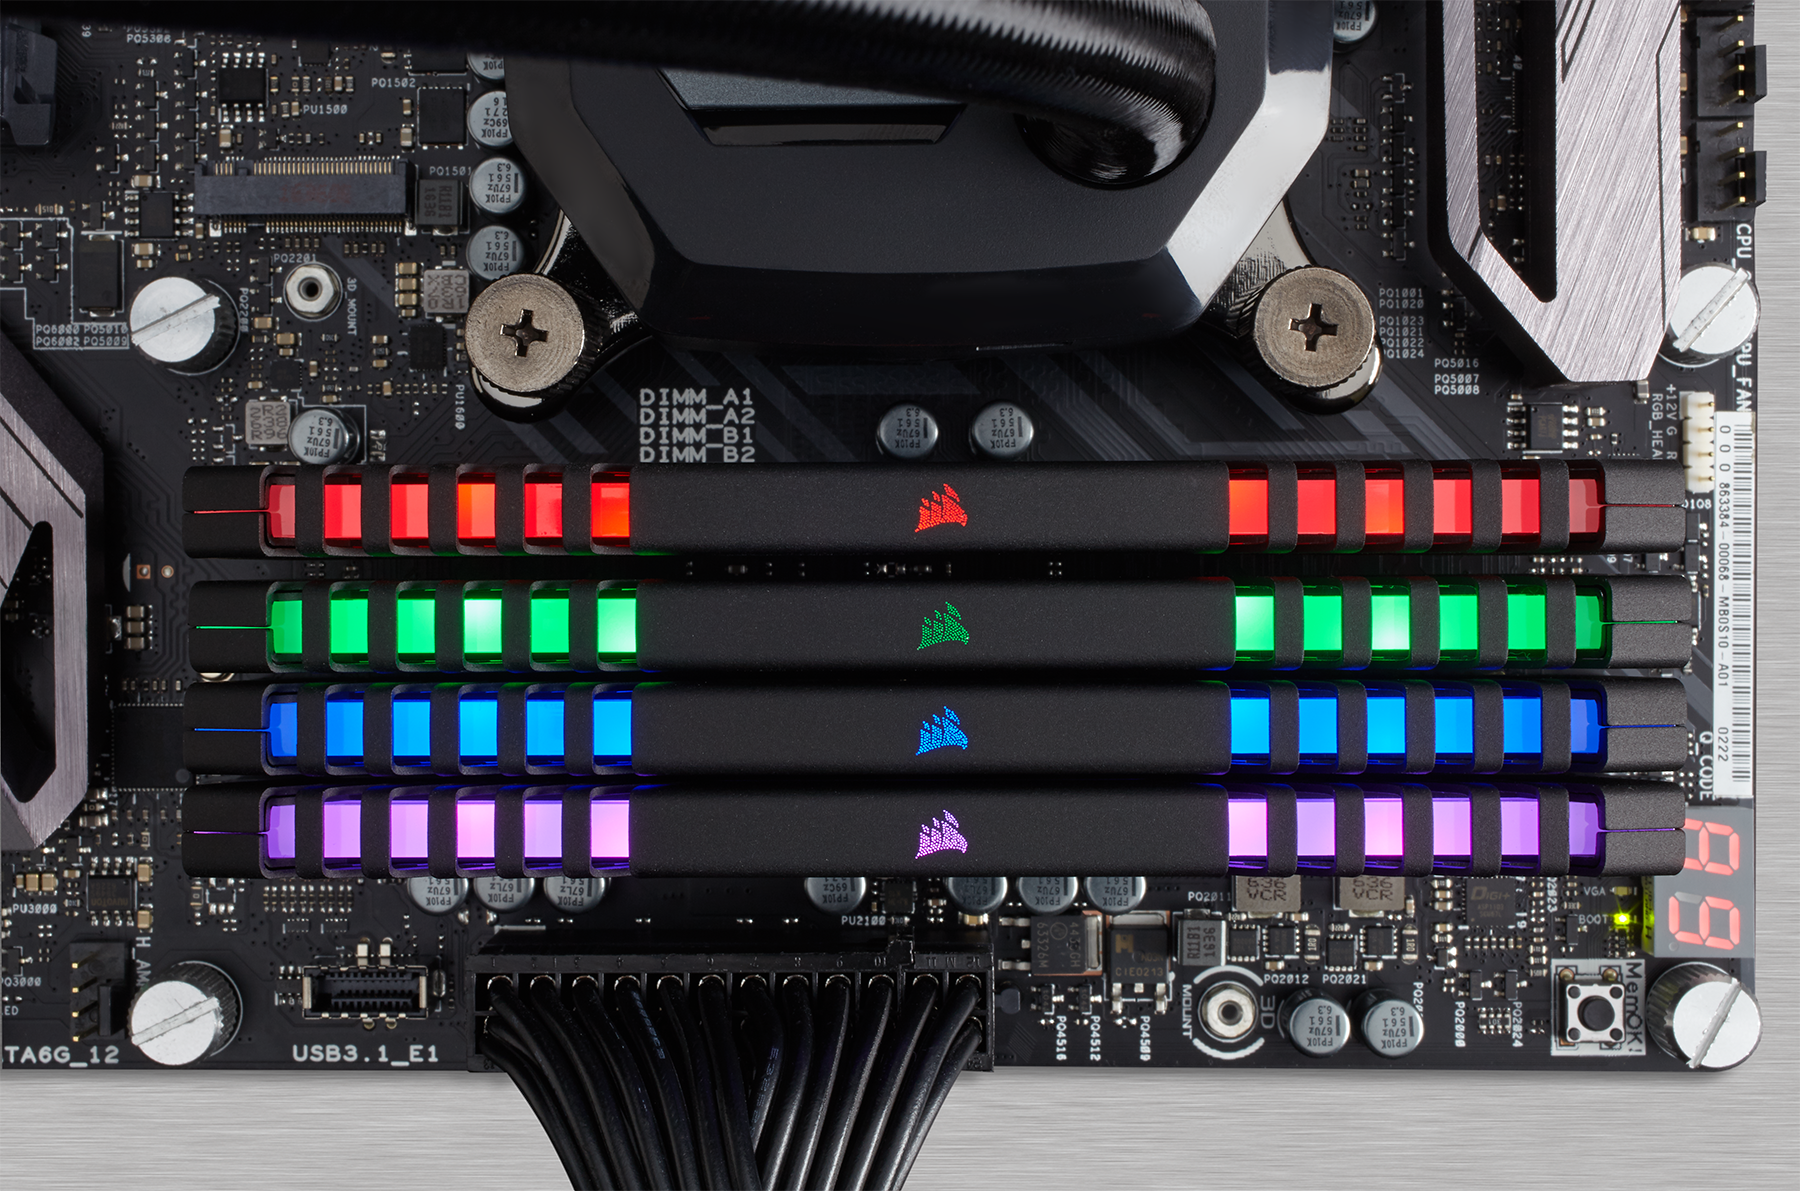 Corsair Vengeance RGB DDR4 Memory Modules with LEDs Now on Sale